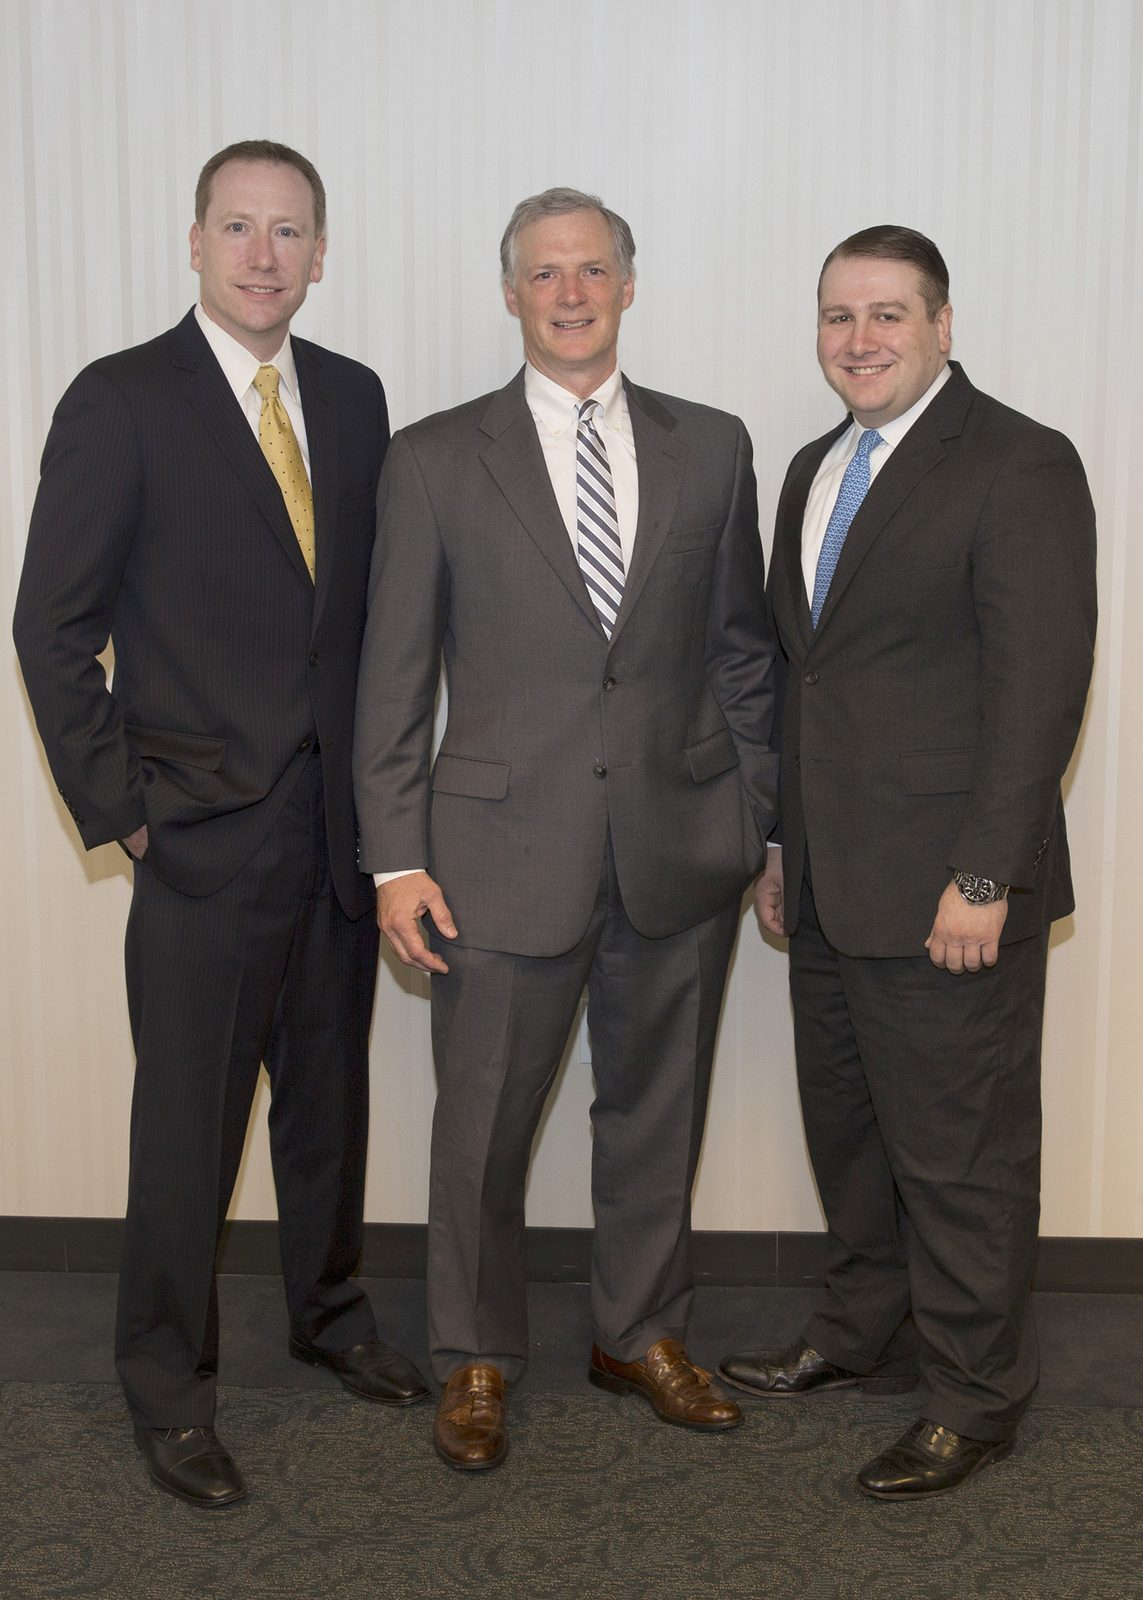 The Markey Group | Stamford, CT | Morgan Stanley Wealth